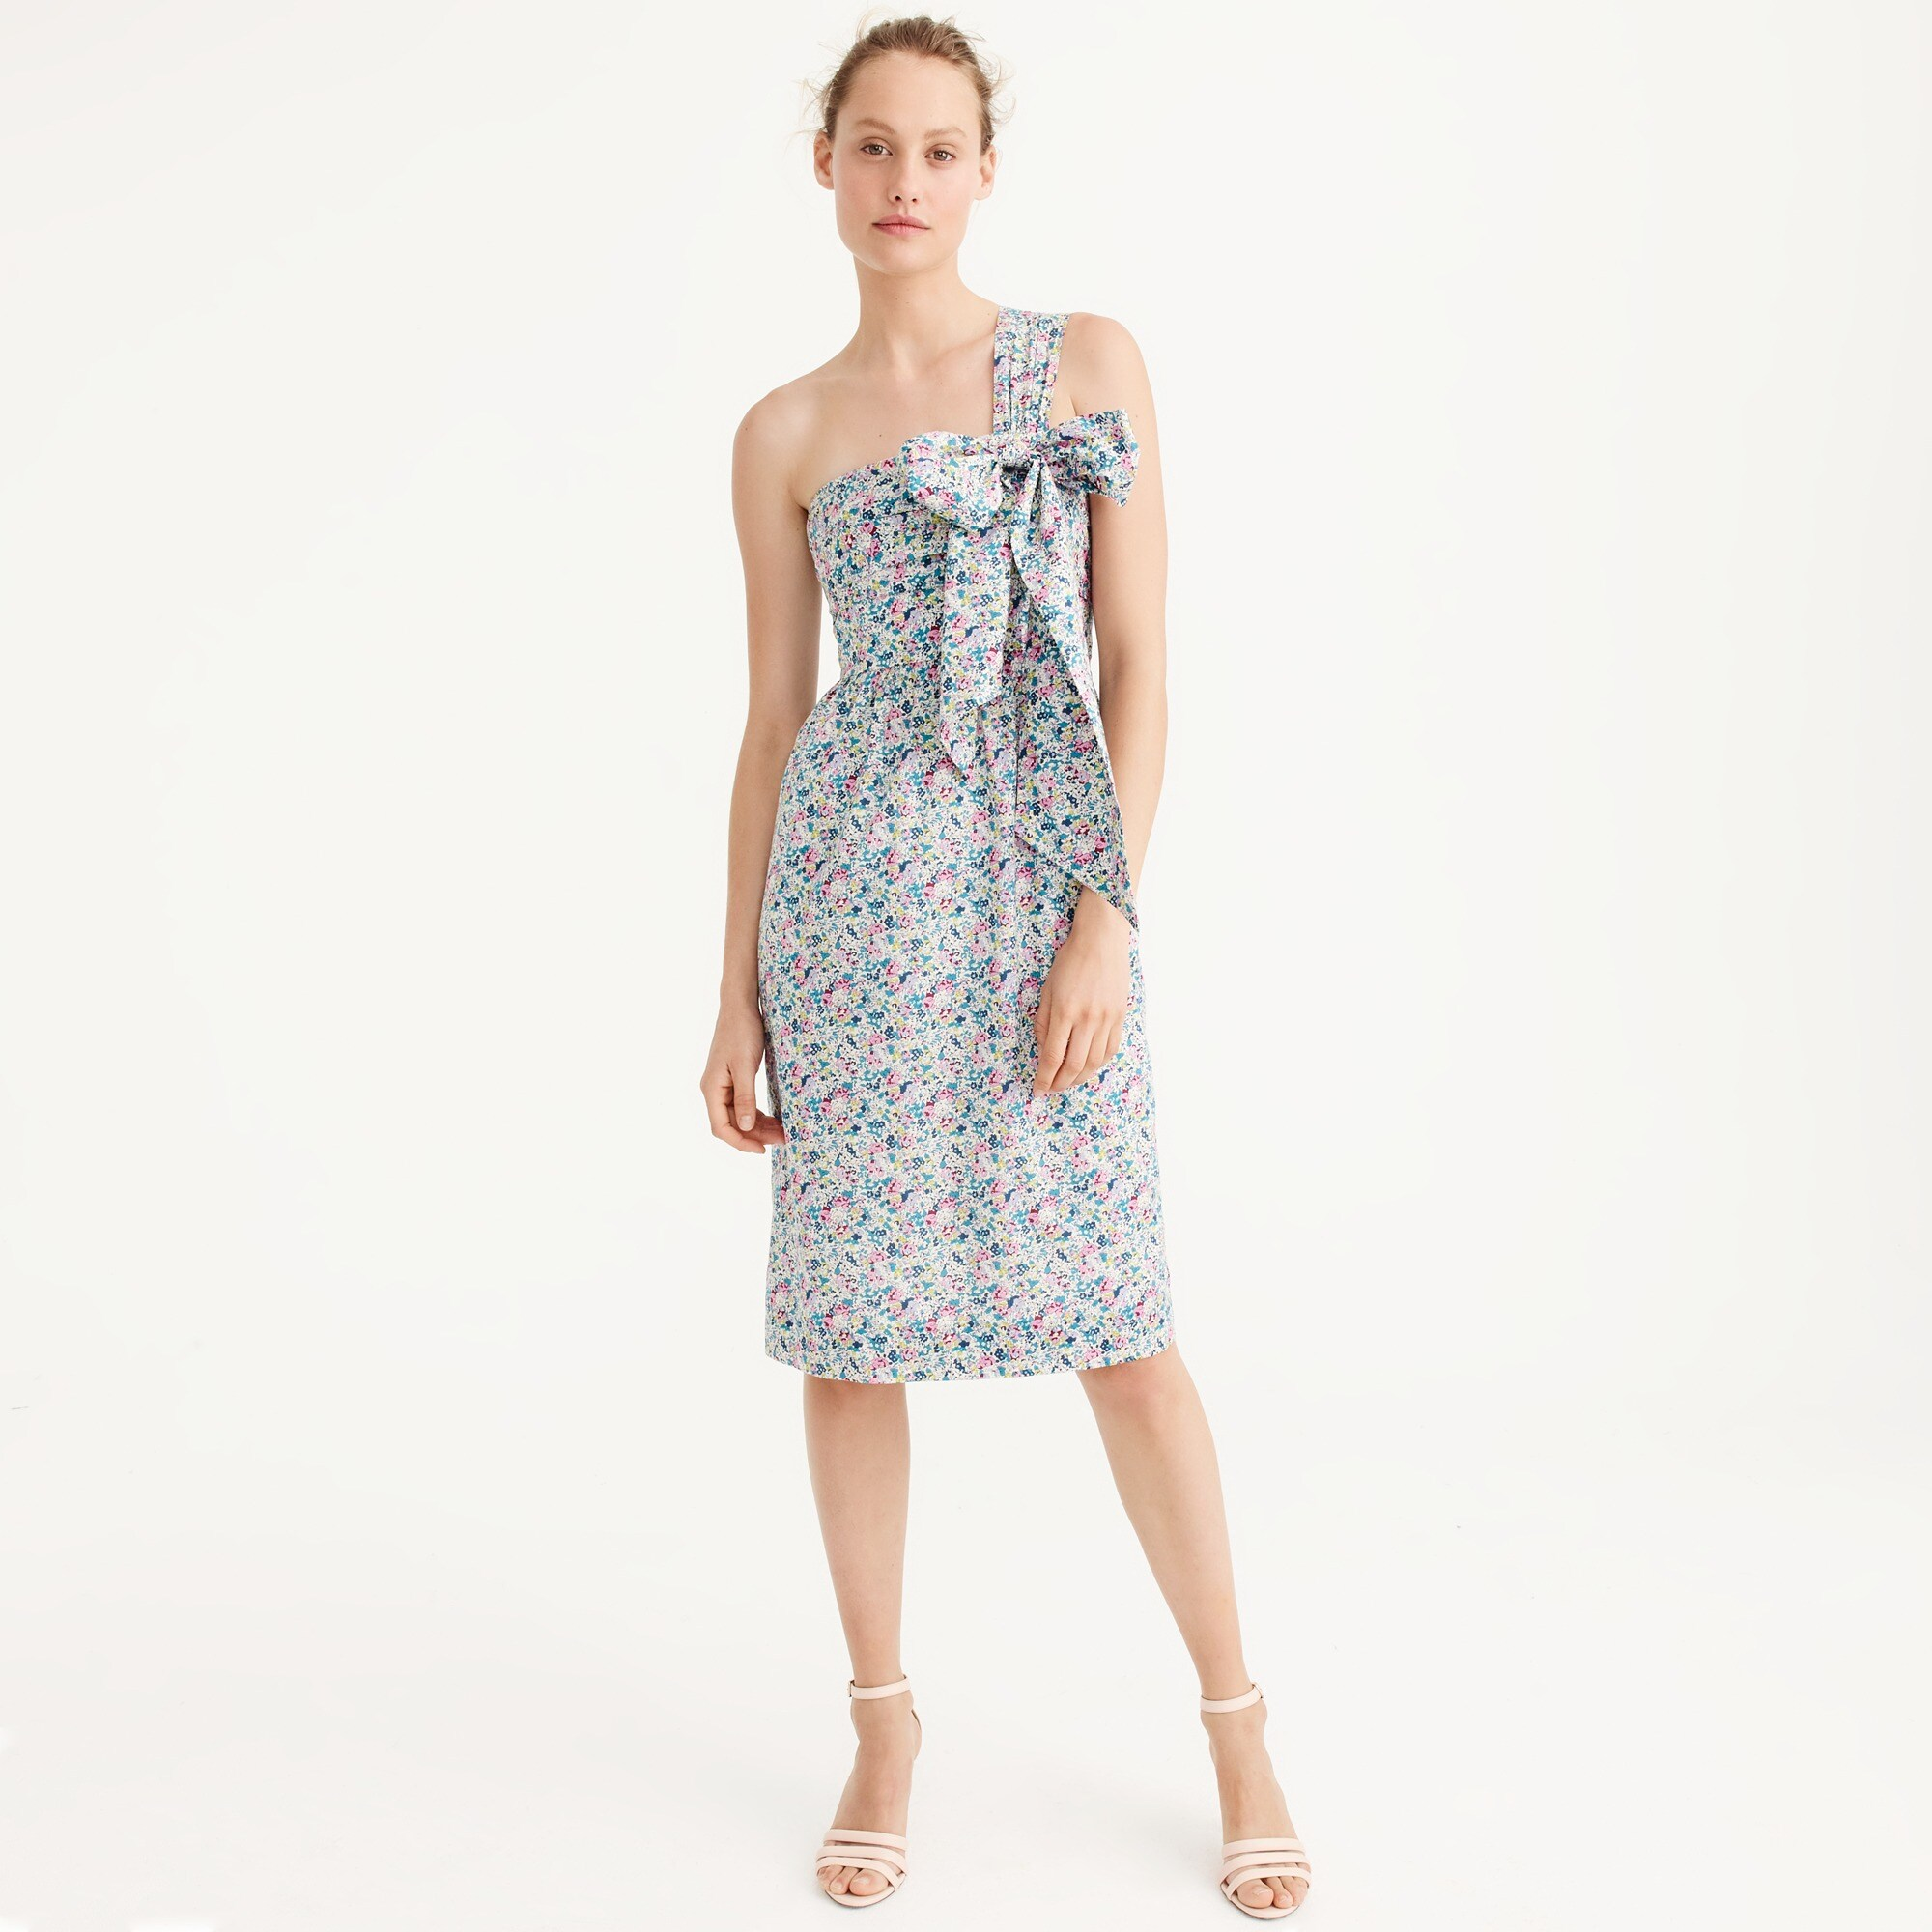 one-shoulder tie dress in liberty® claire-aude floral : women ready-to-party collection